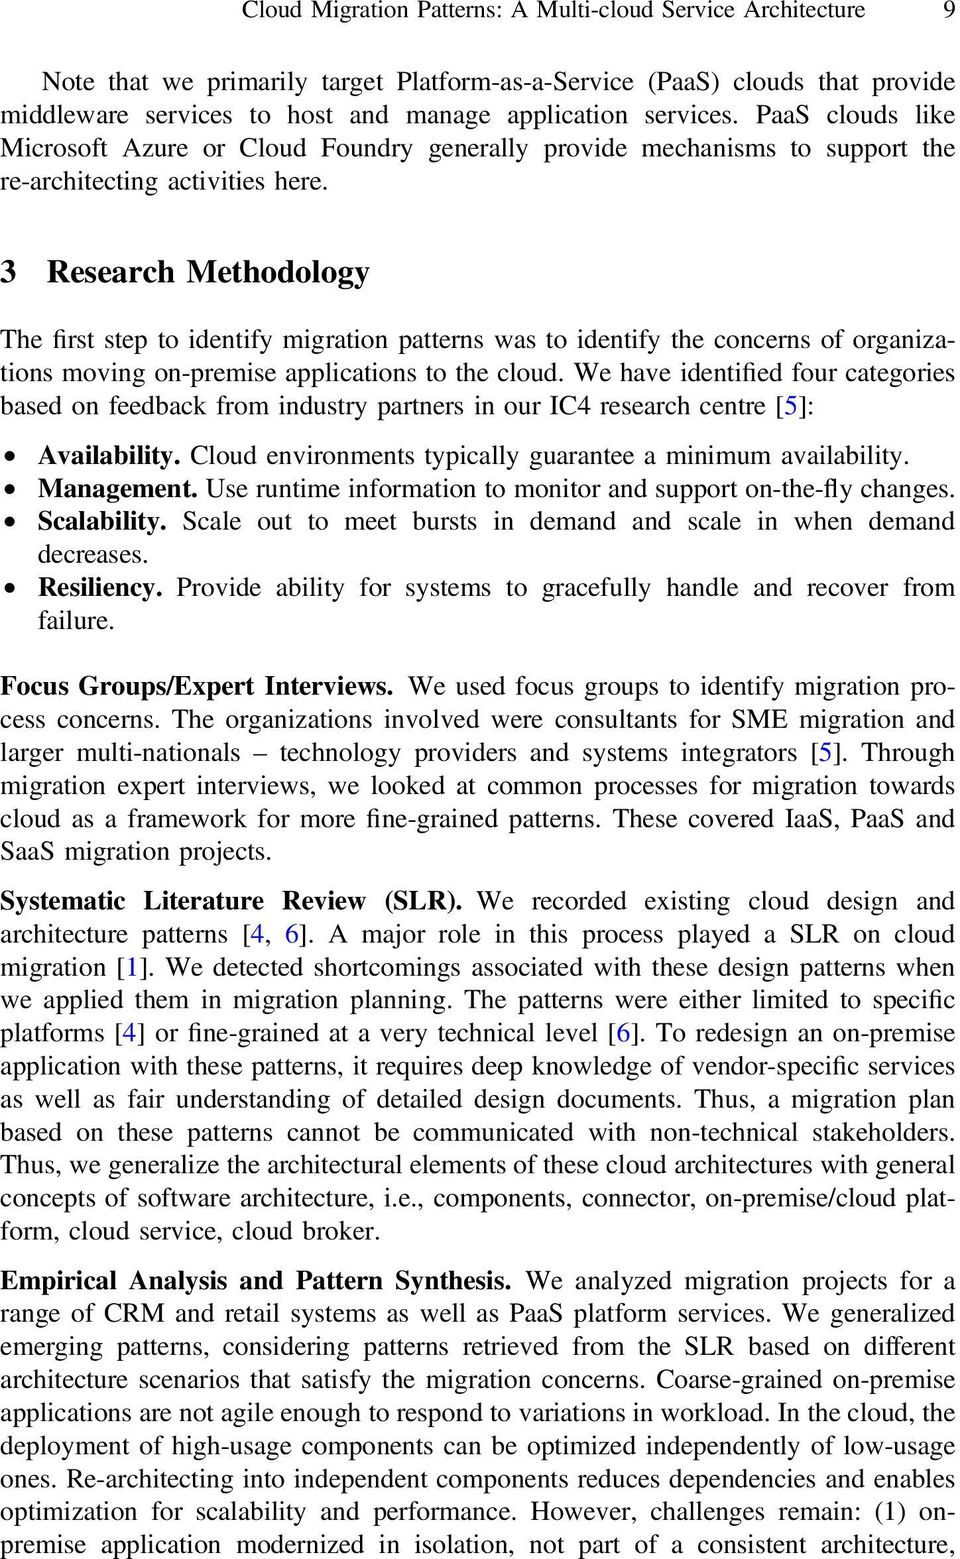 3 Research Methodology The first step to identify migration patterns was to identify the concerns of organizations moving on-premise applications to the cloud.